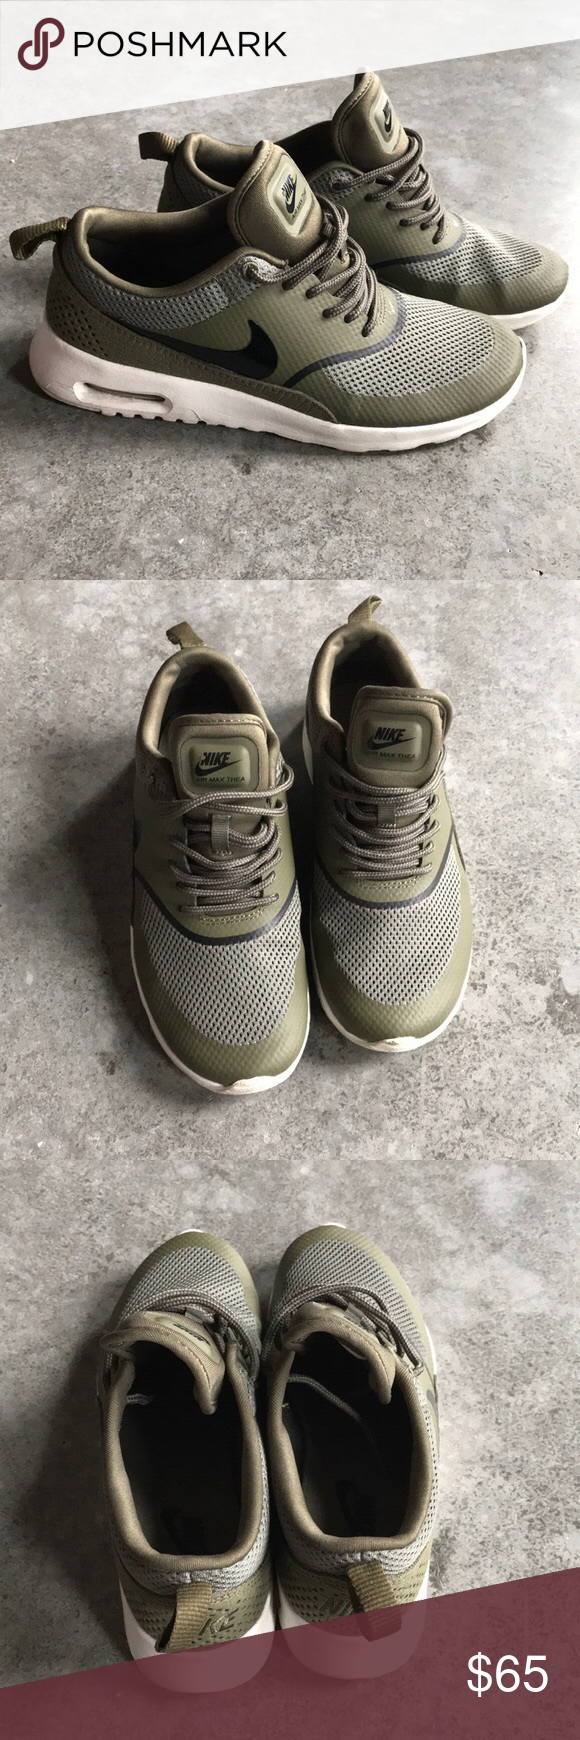 bba135bbd89f Olive green Nike Air Max Thea Hard to find this color! Size 6.5